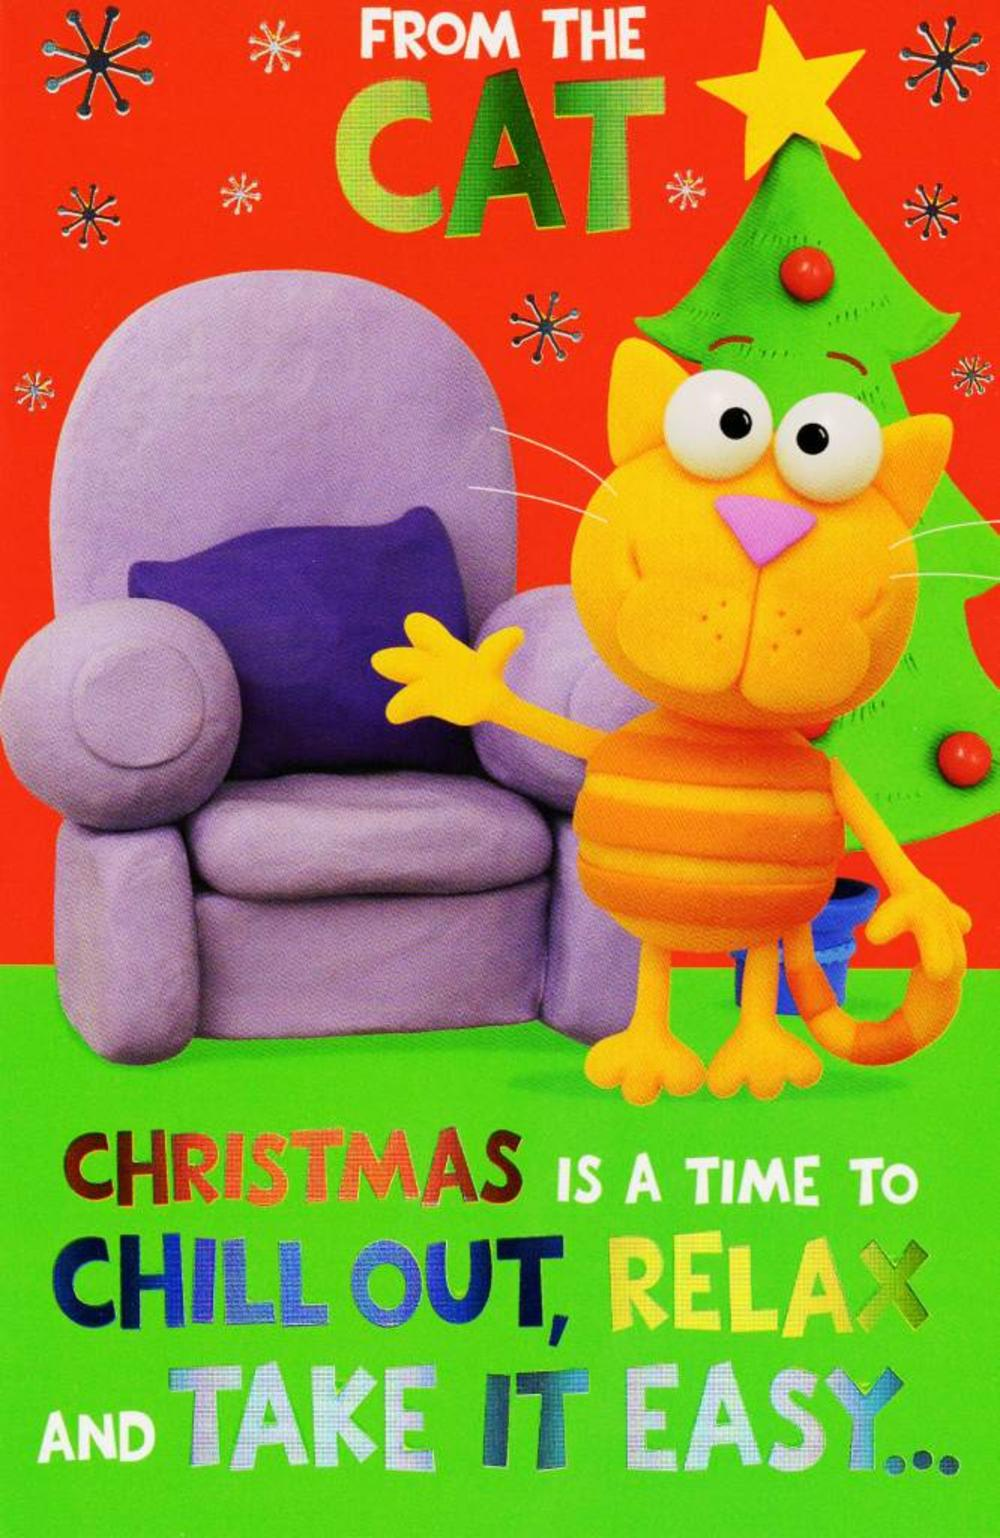 From The Cat  Funny Christmas Card